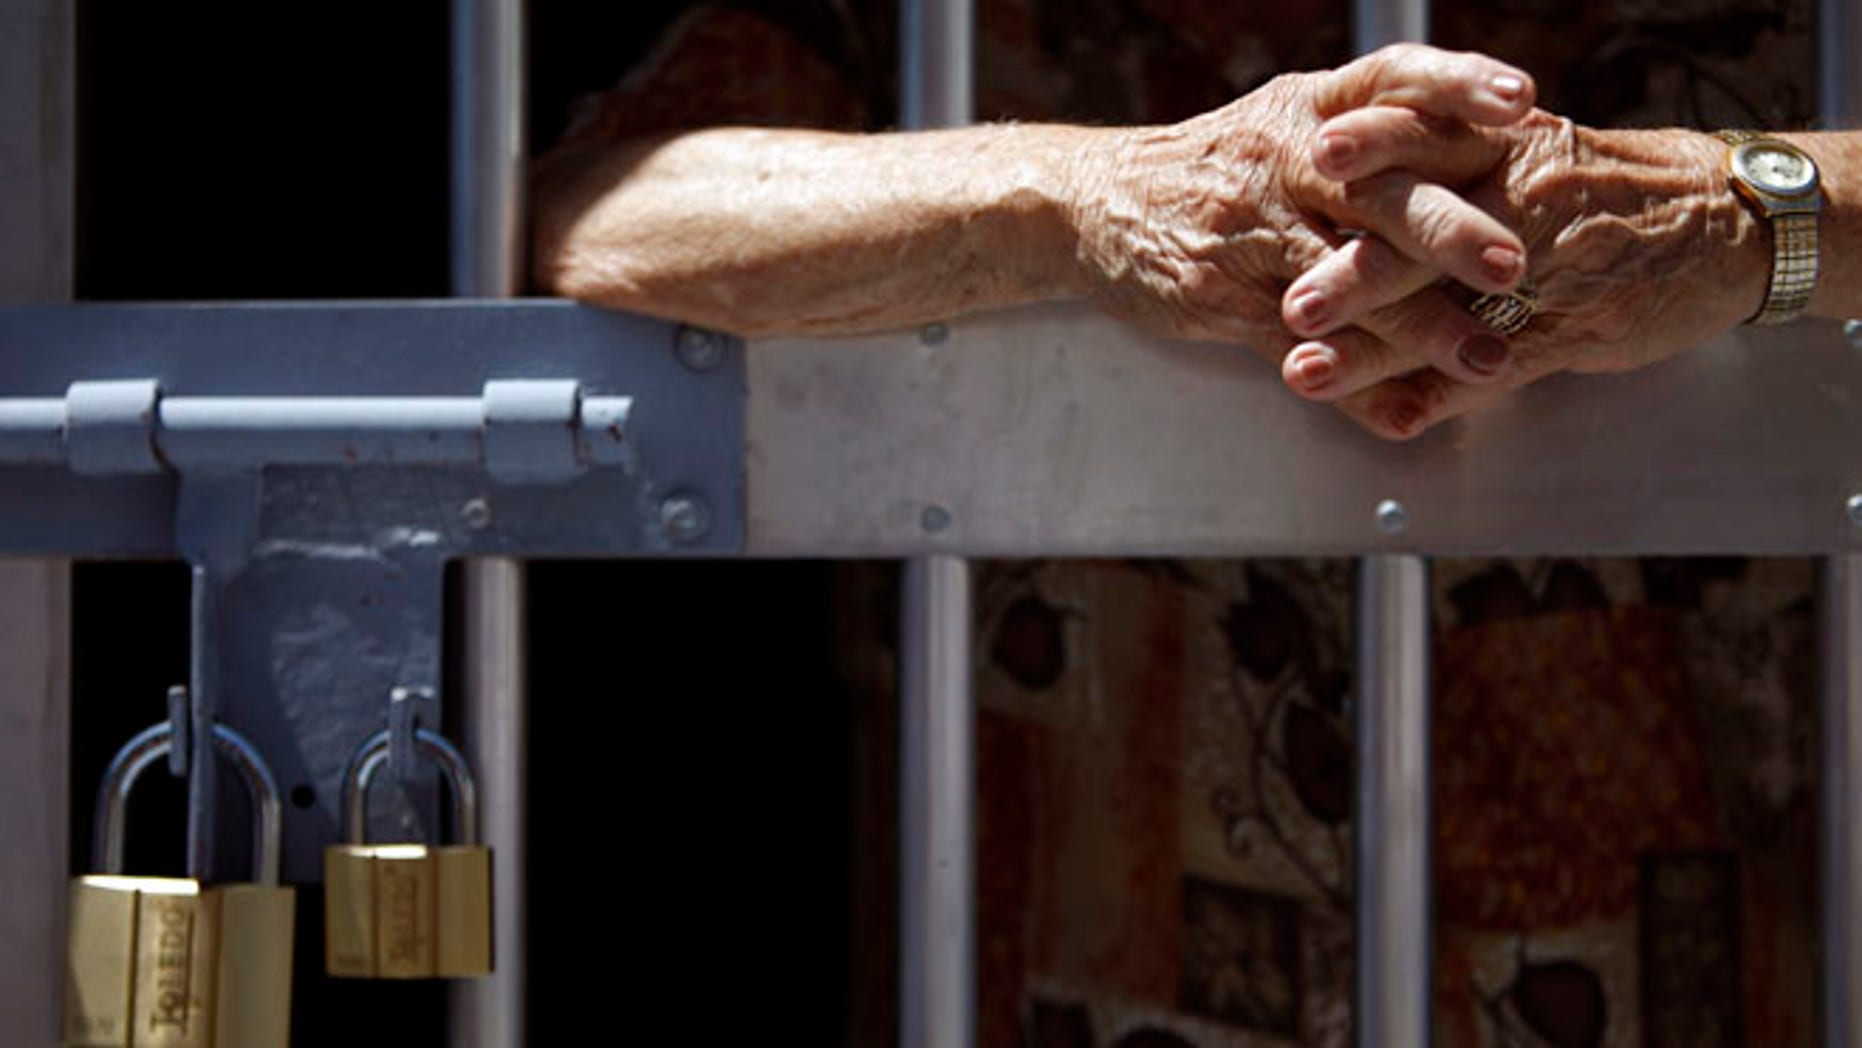 May 29, 2013: Unidentified man stands behind prison bars.